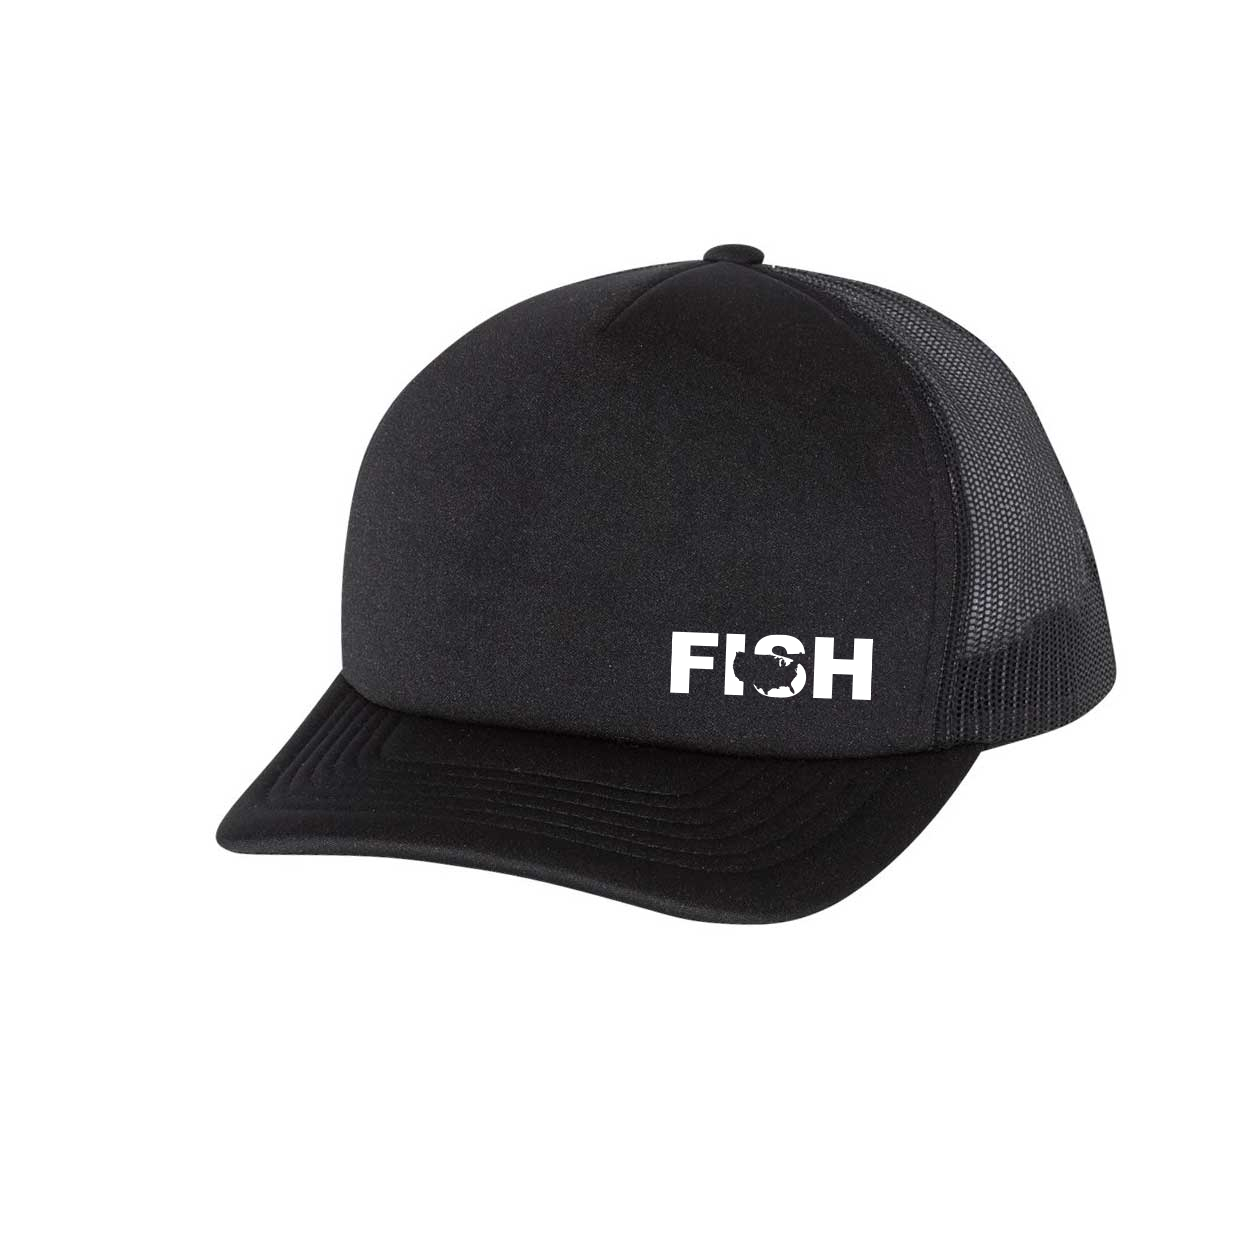 Fish United States Night Out Premium Foam Trucker Snapback Hat Black (White Logo)